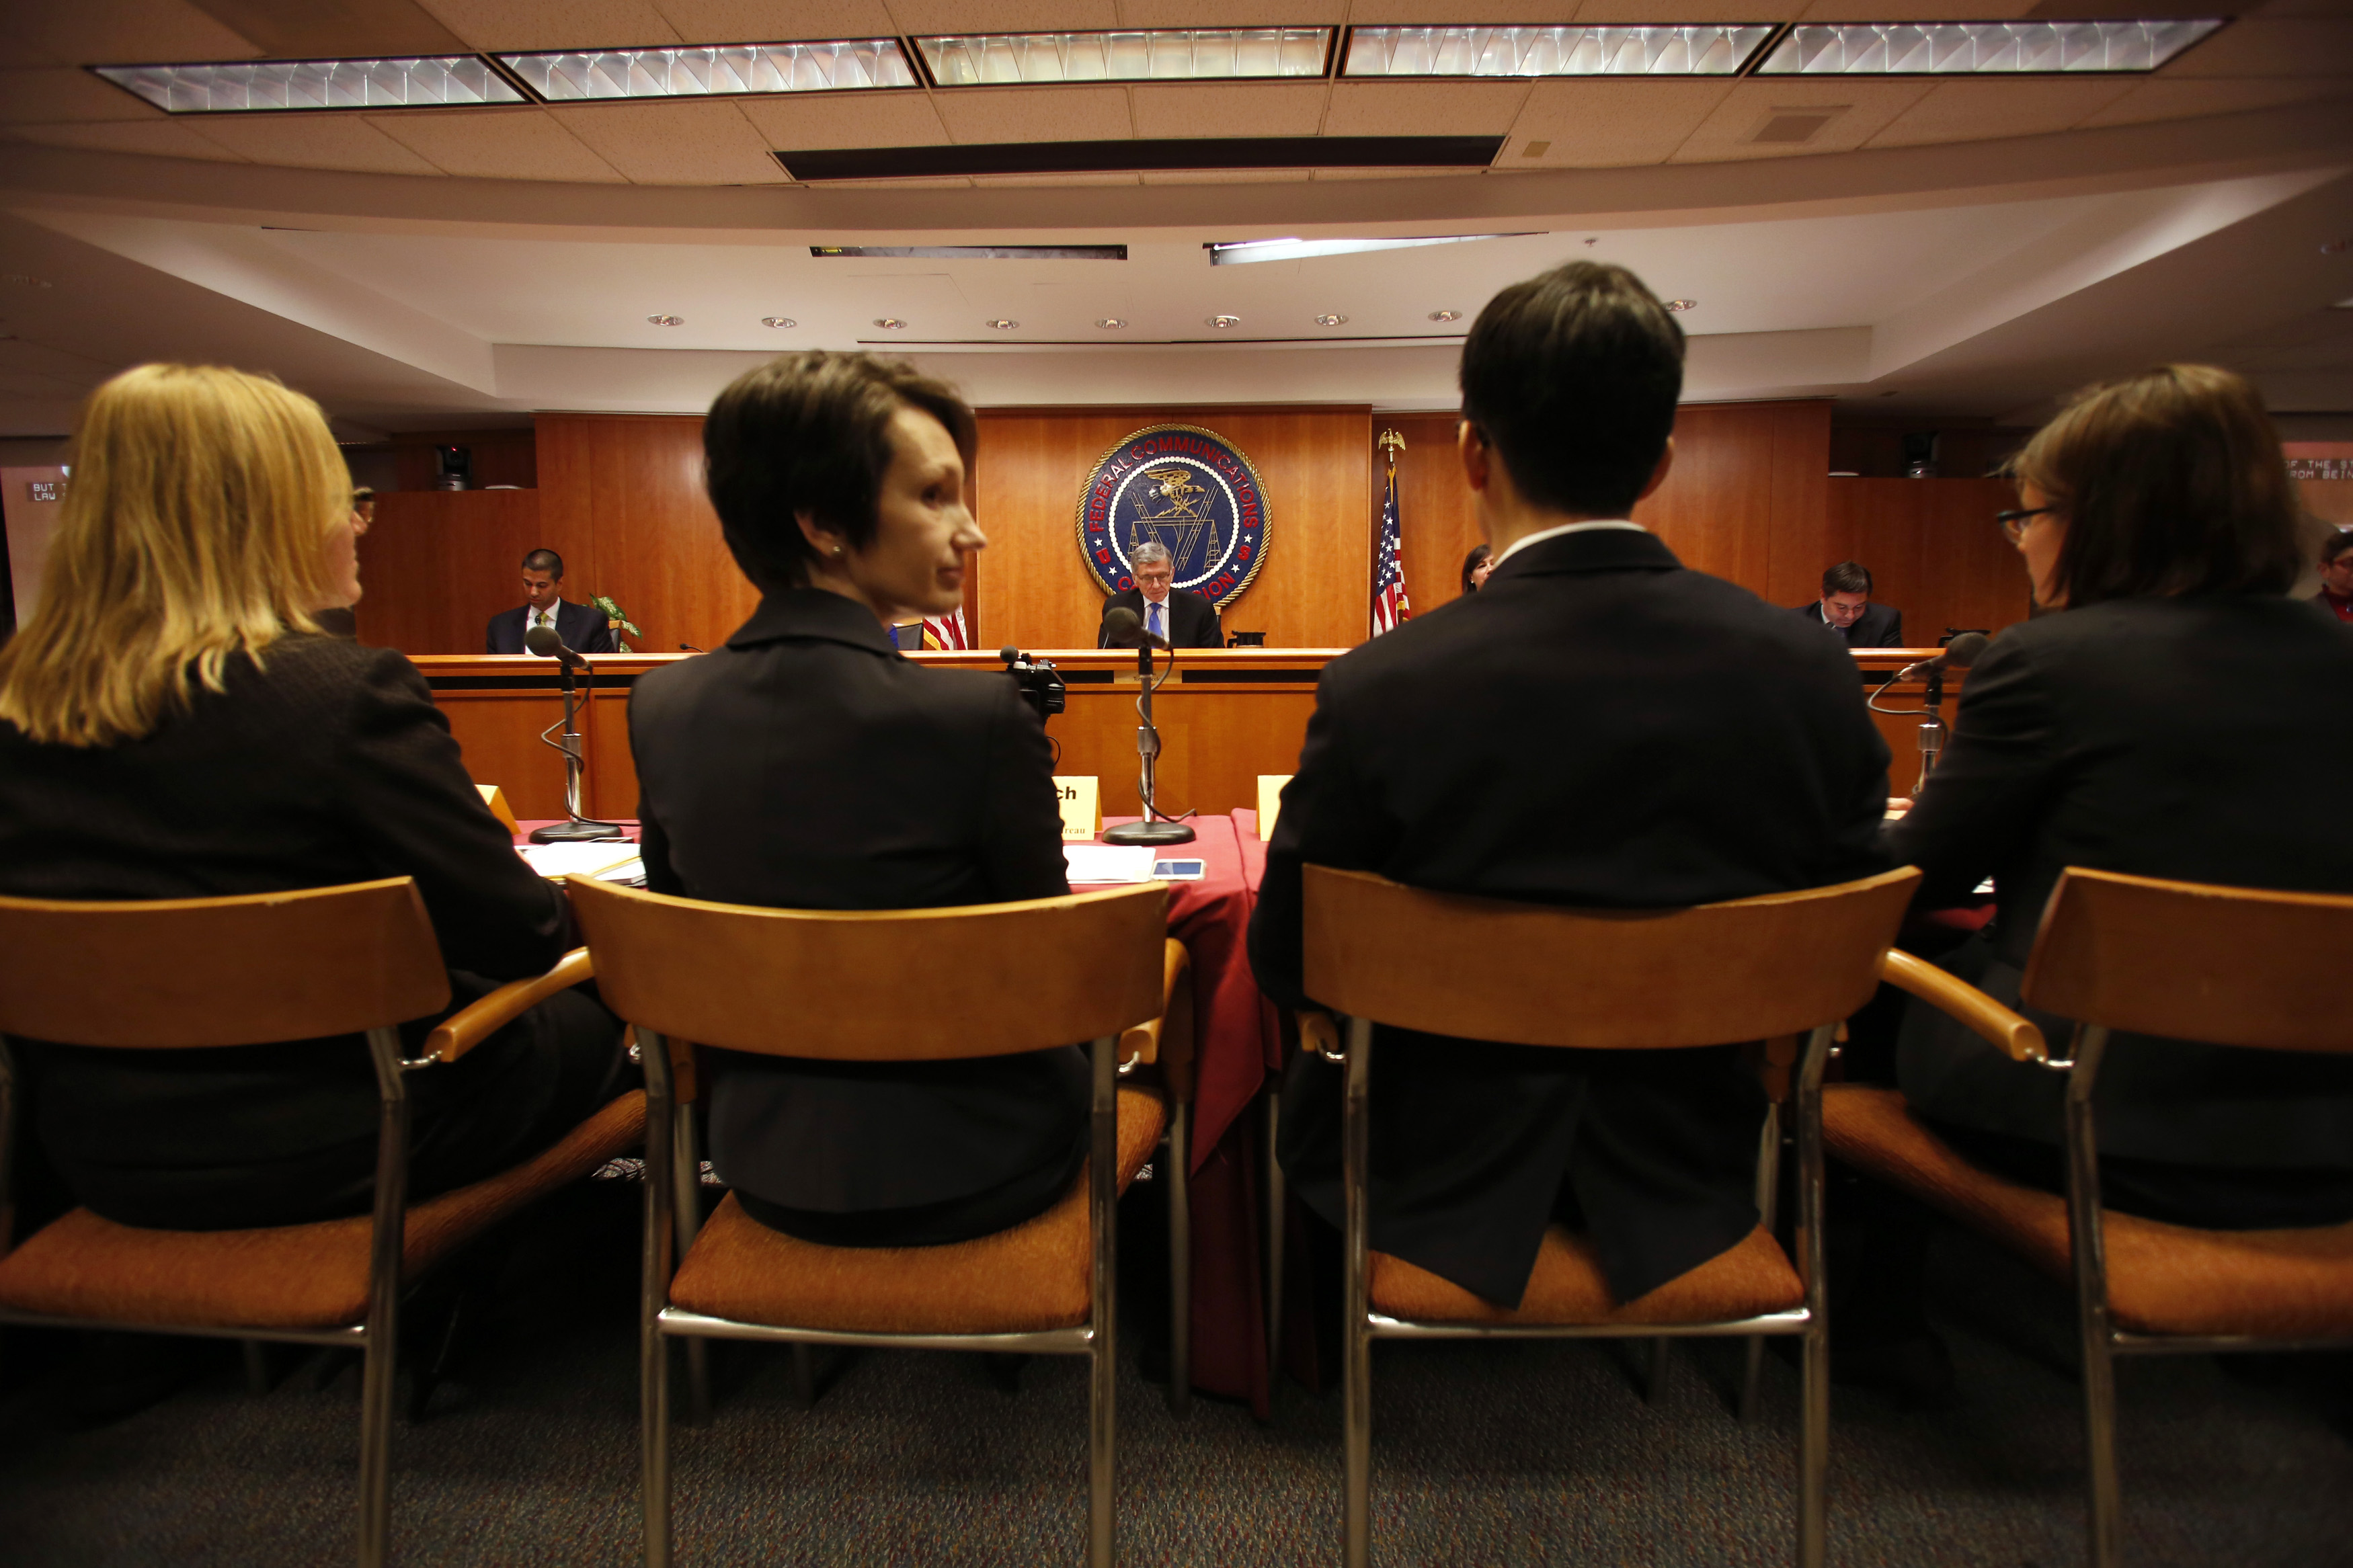 The Federal Communications Commission (FCC) holds a hearing in Washington